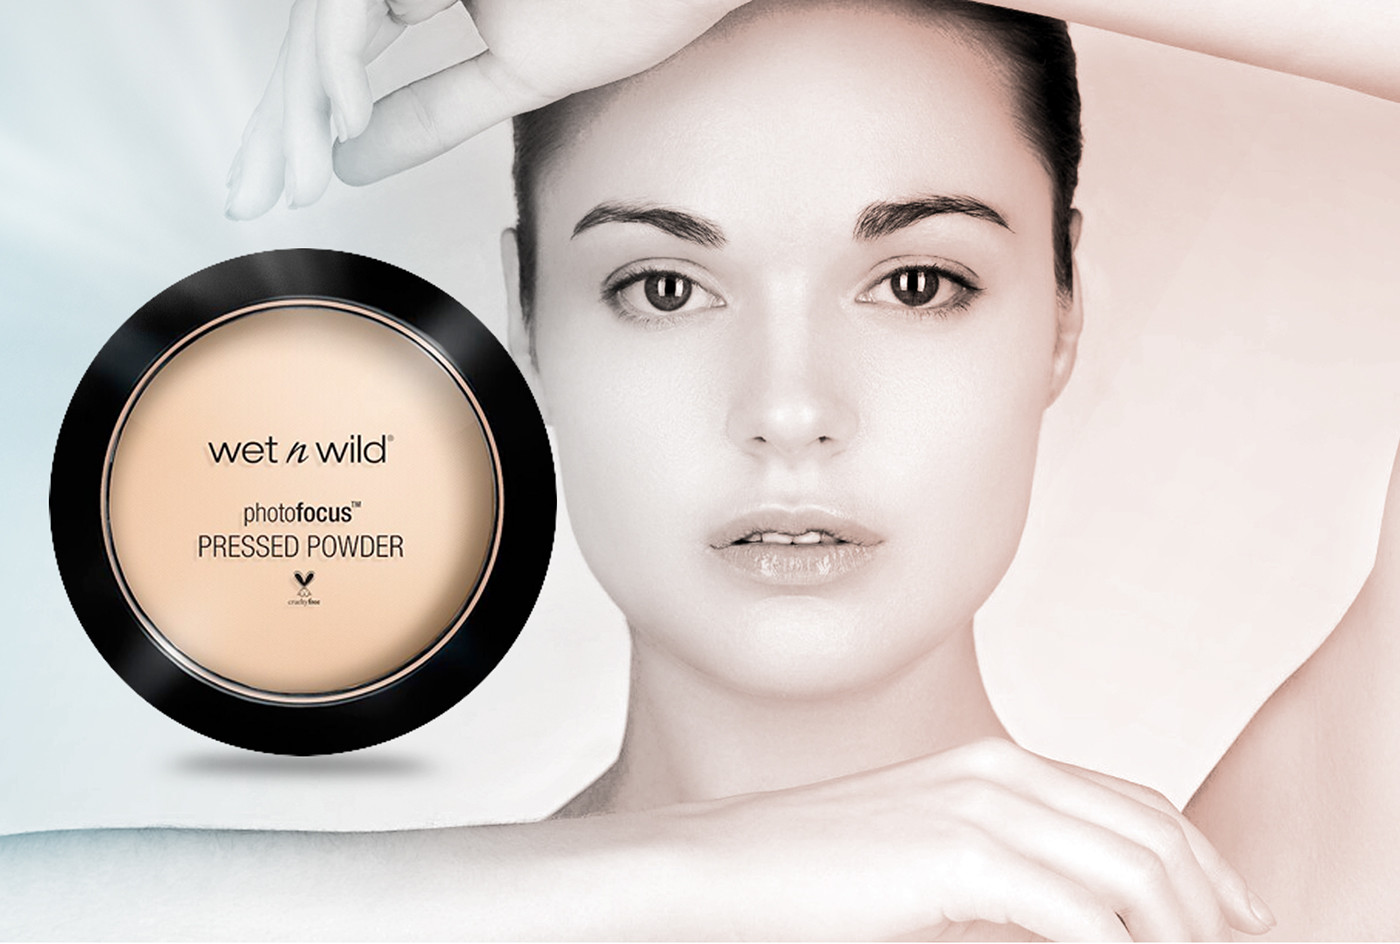 Adding the Face Powder Product image